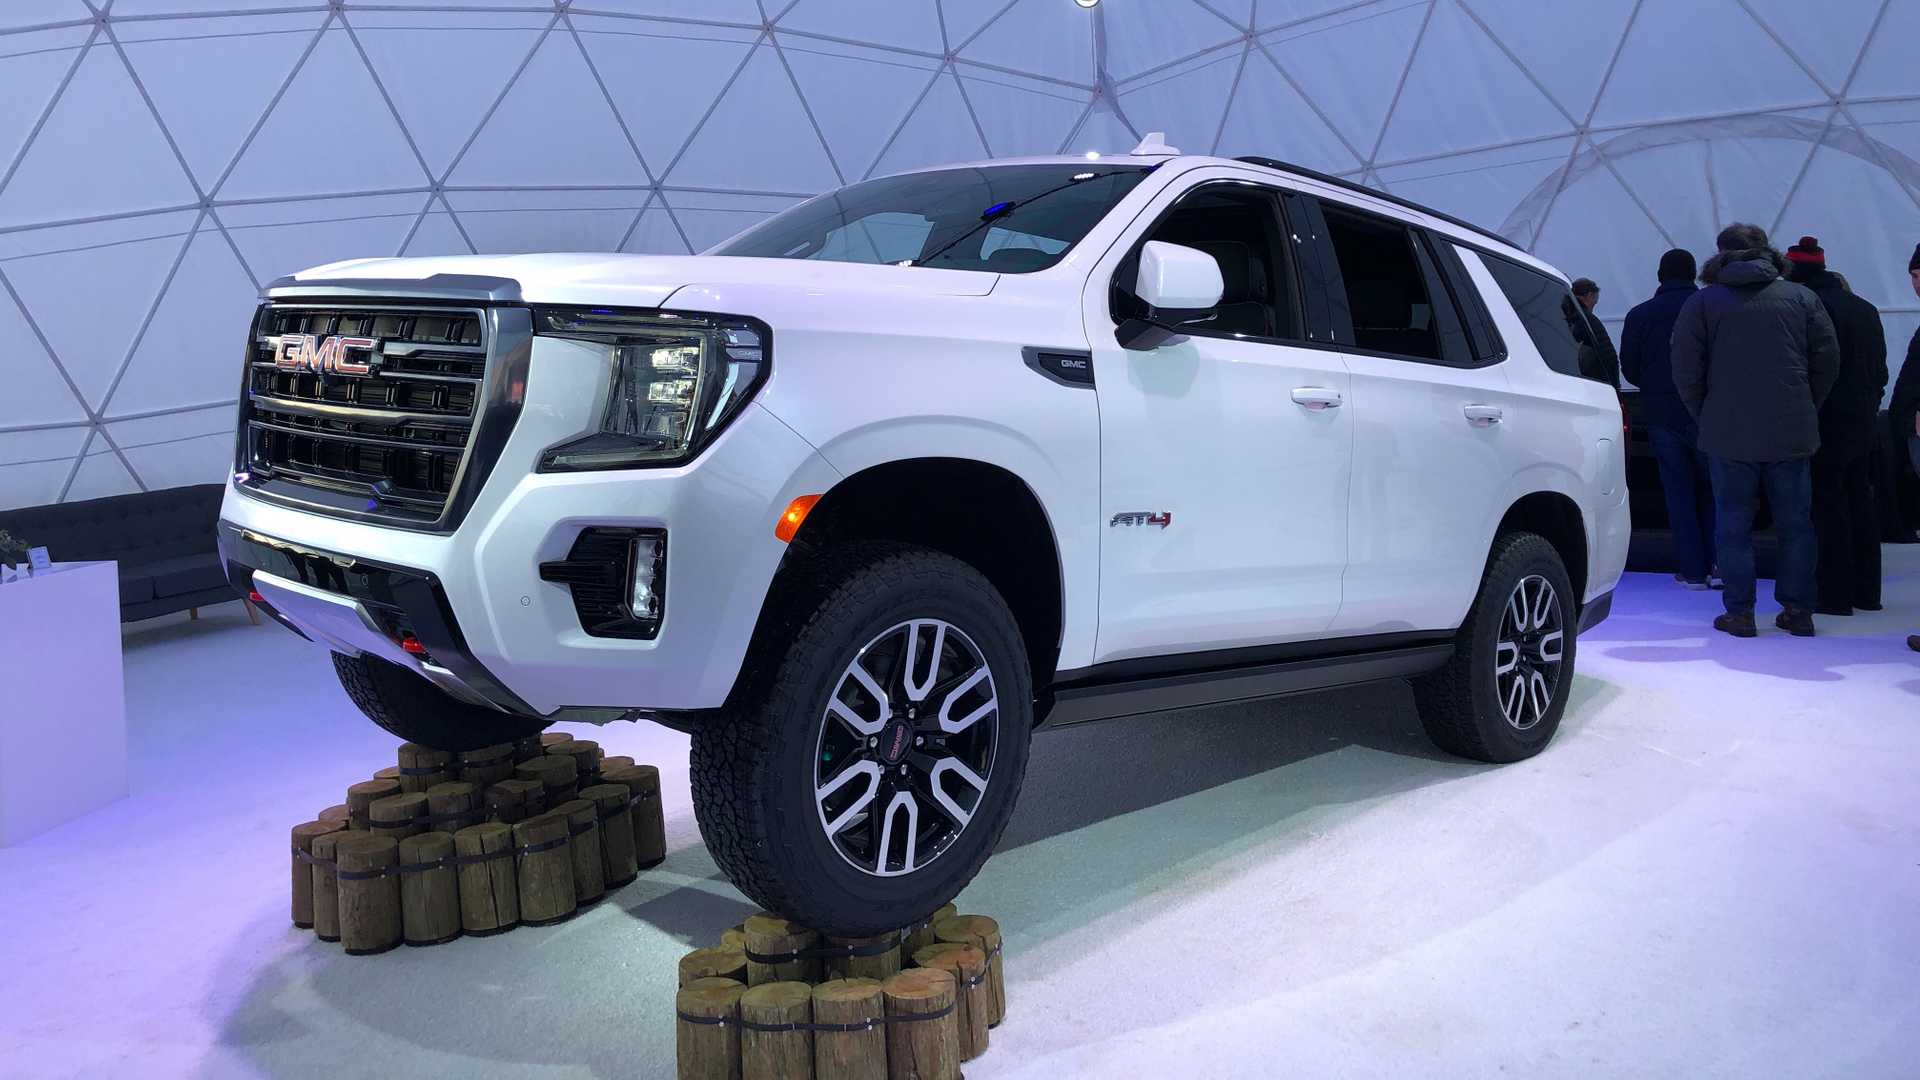 2021 Gmc Yukon Debuts With Bold Looks New At4 Trim